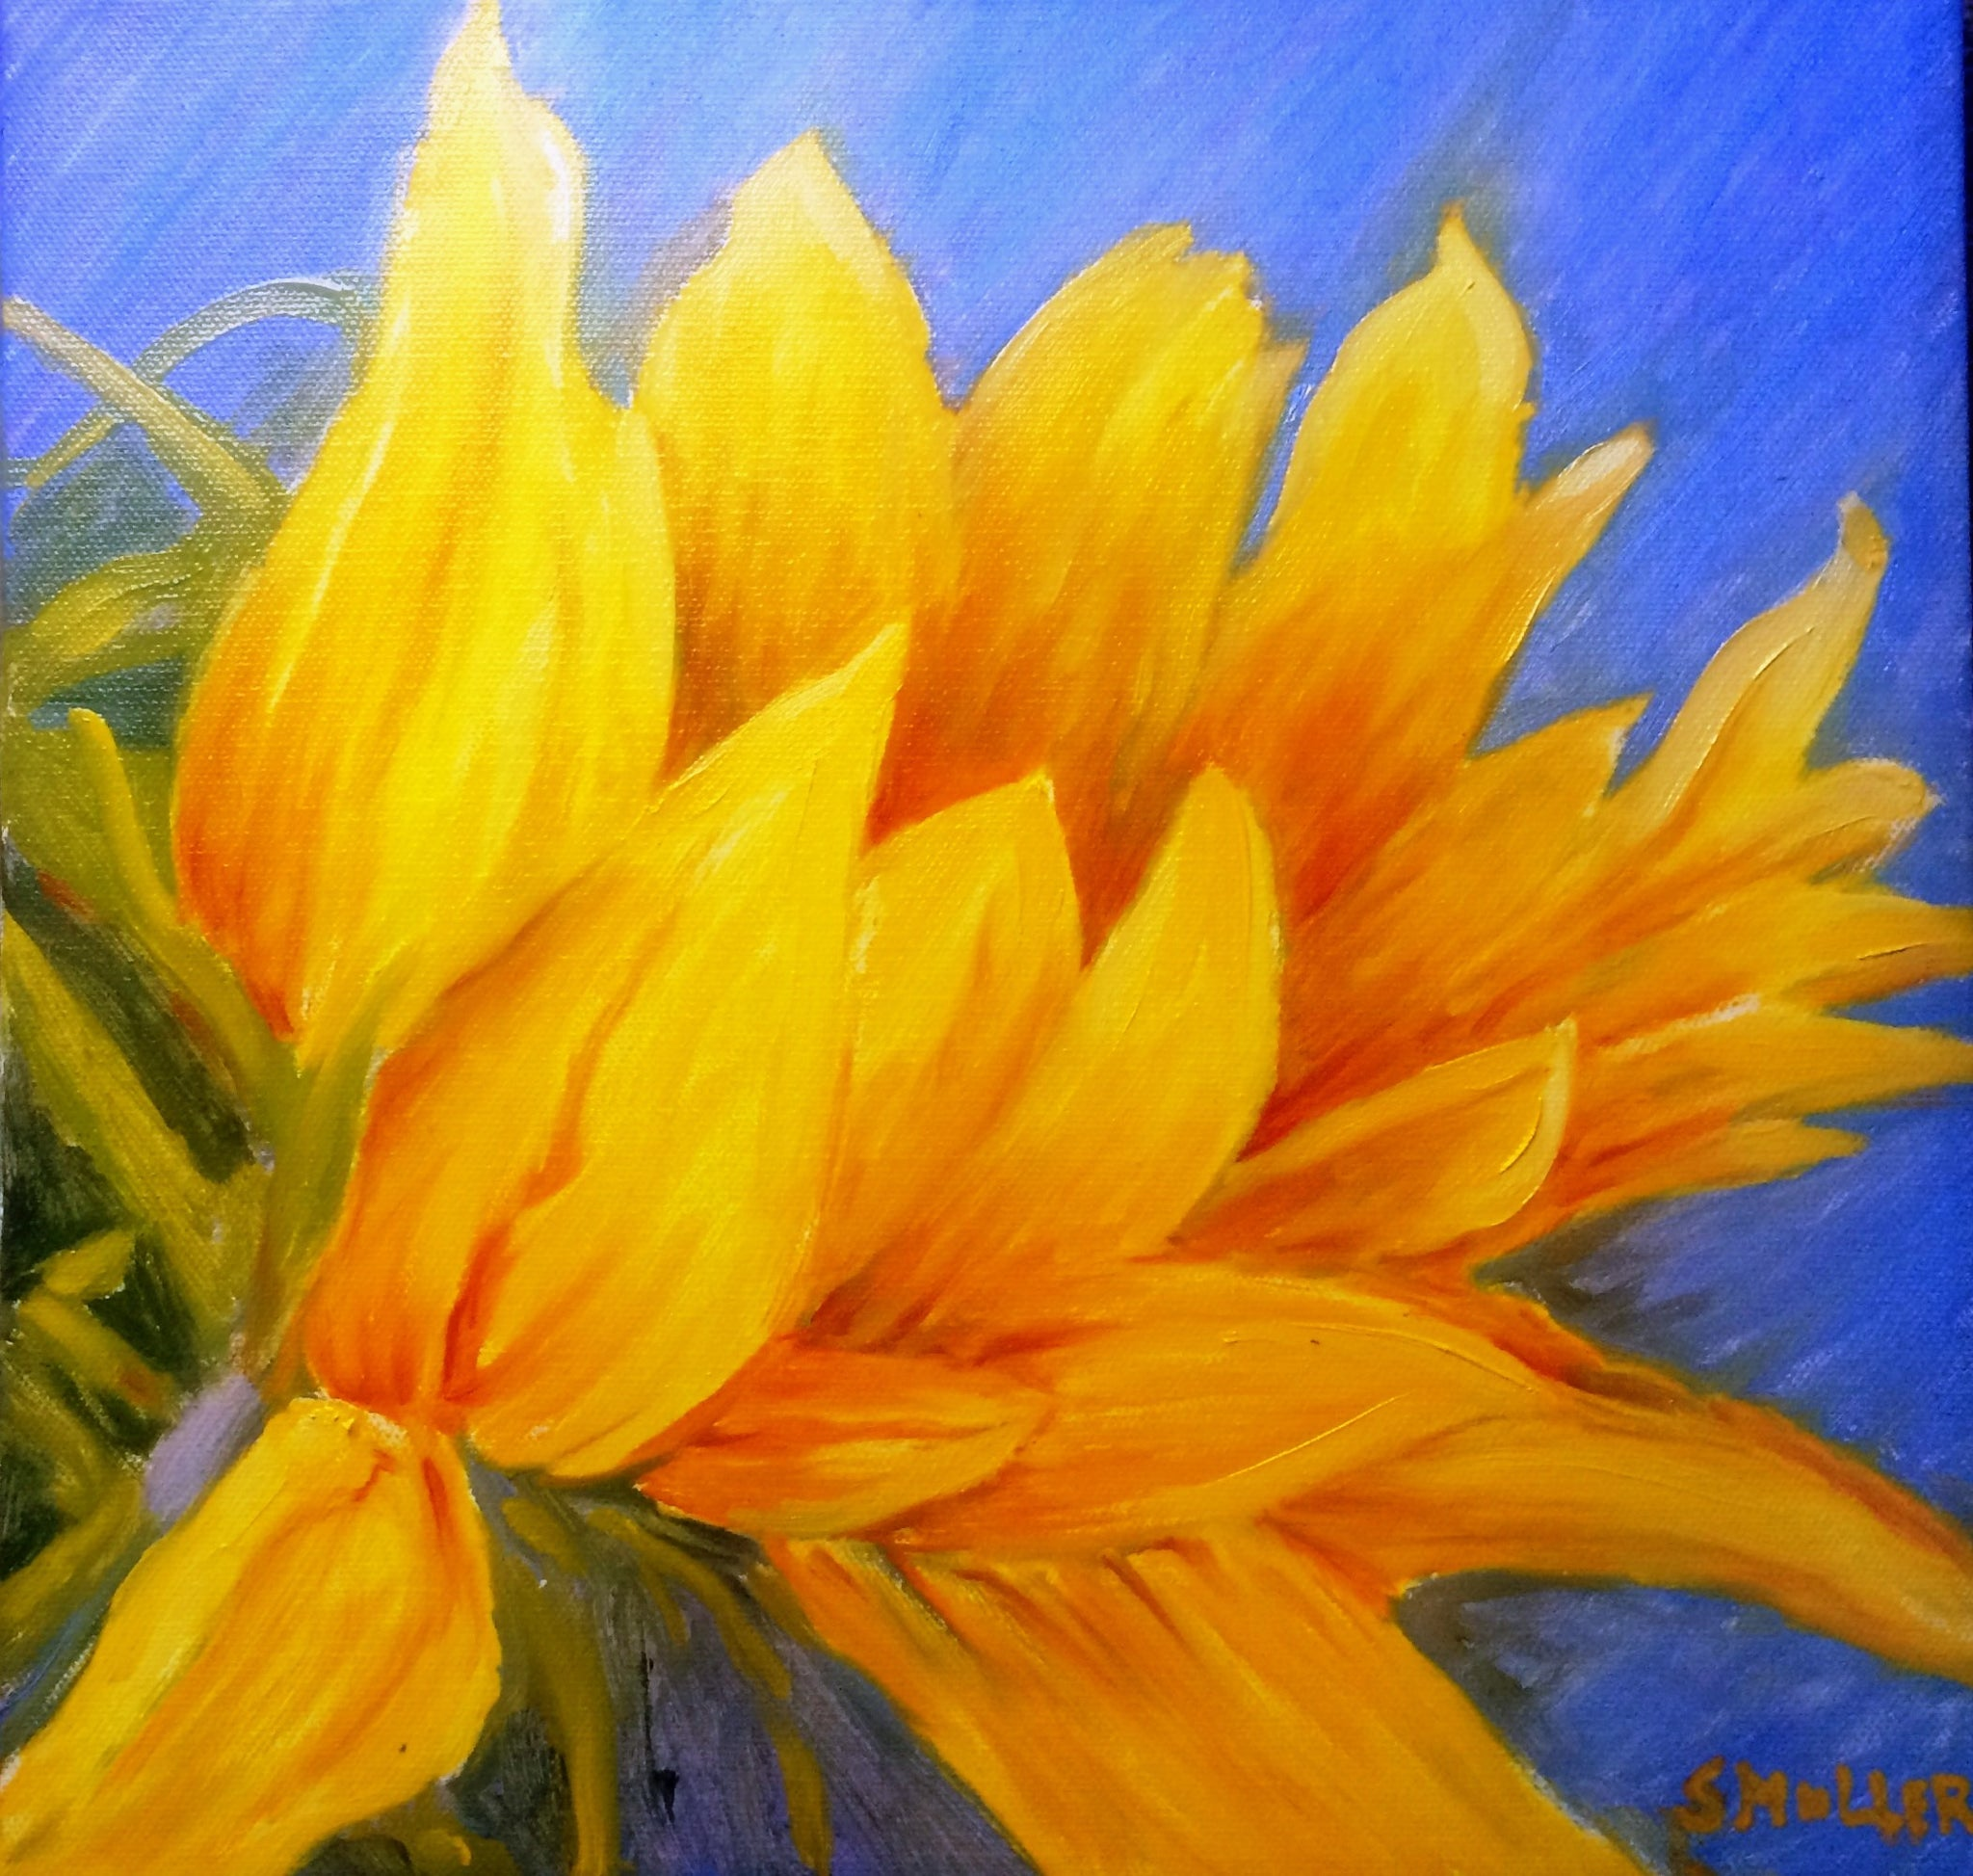 Folded Sunflower by Susan Miller